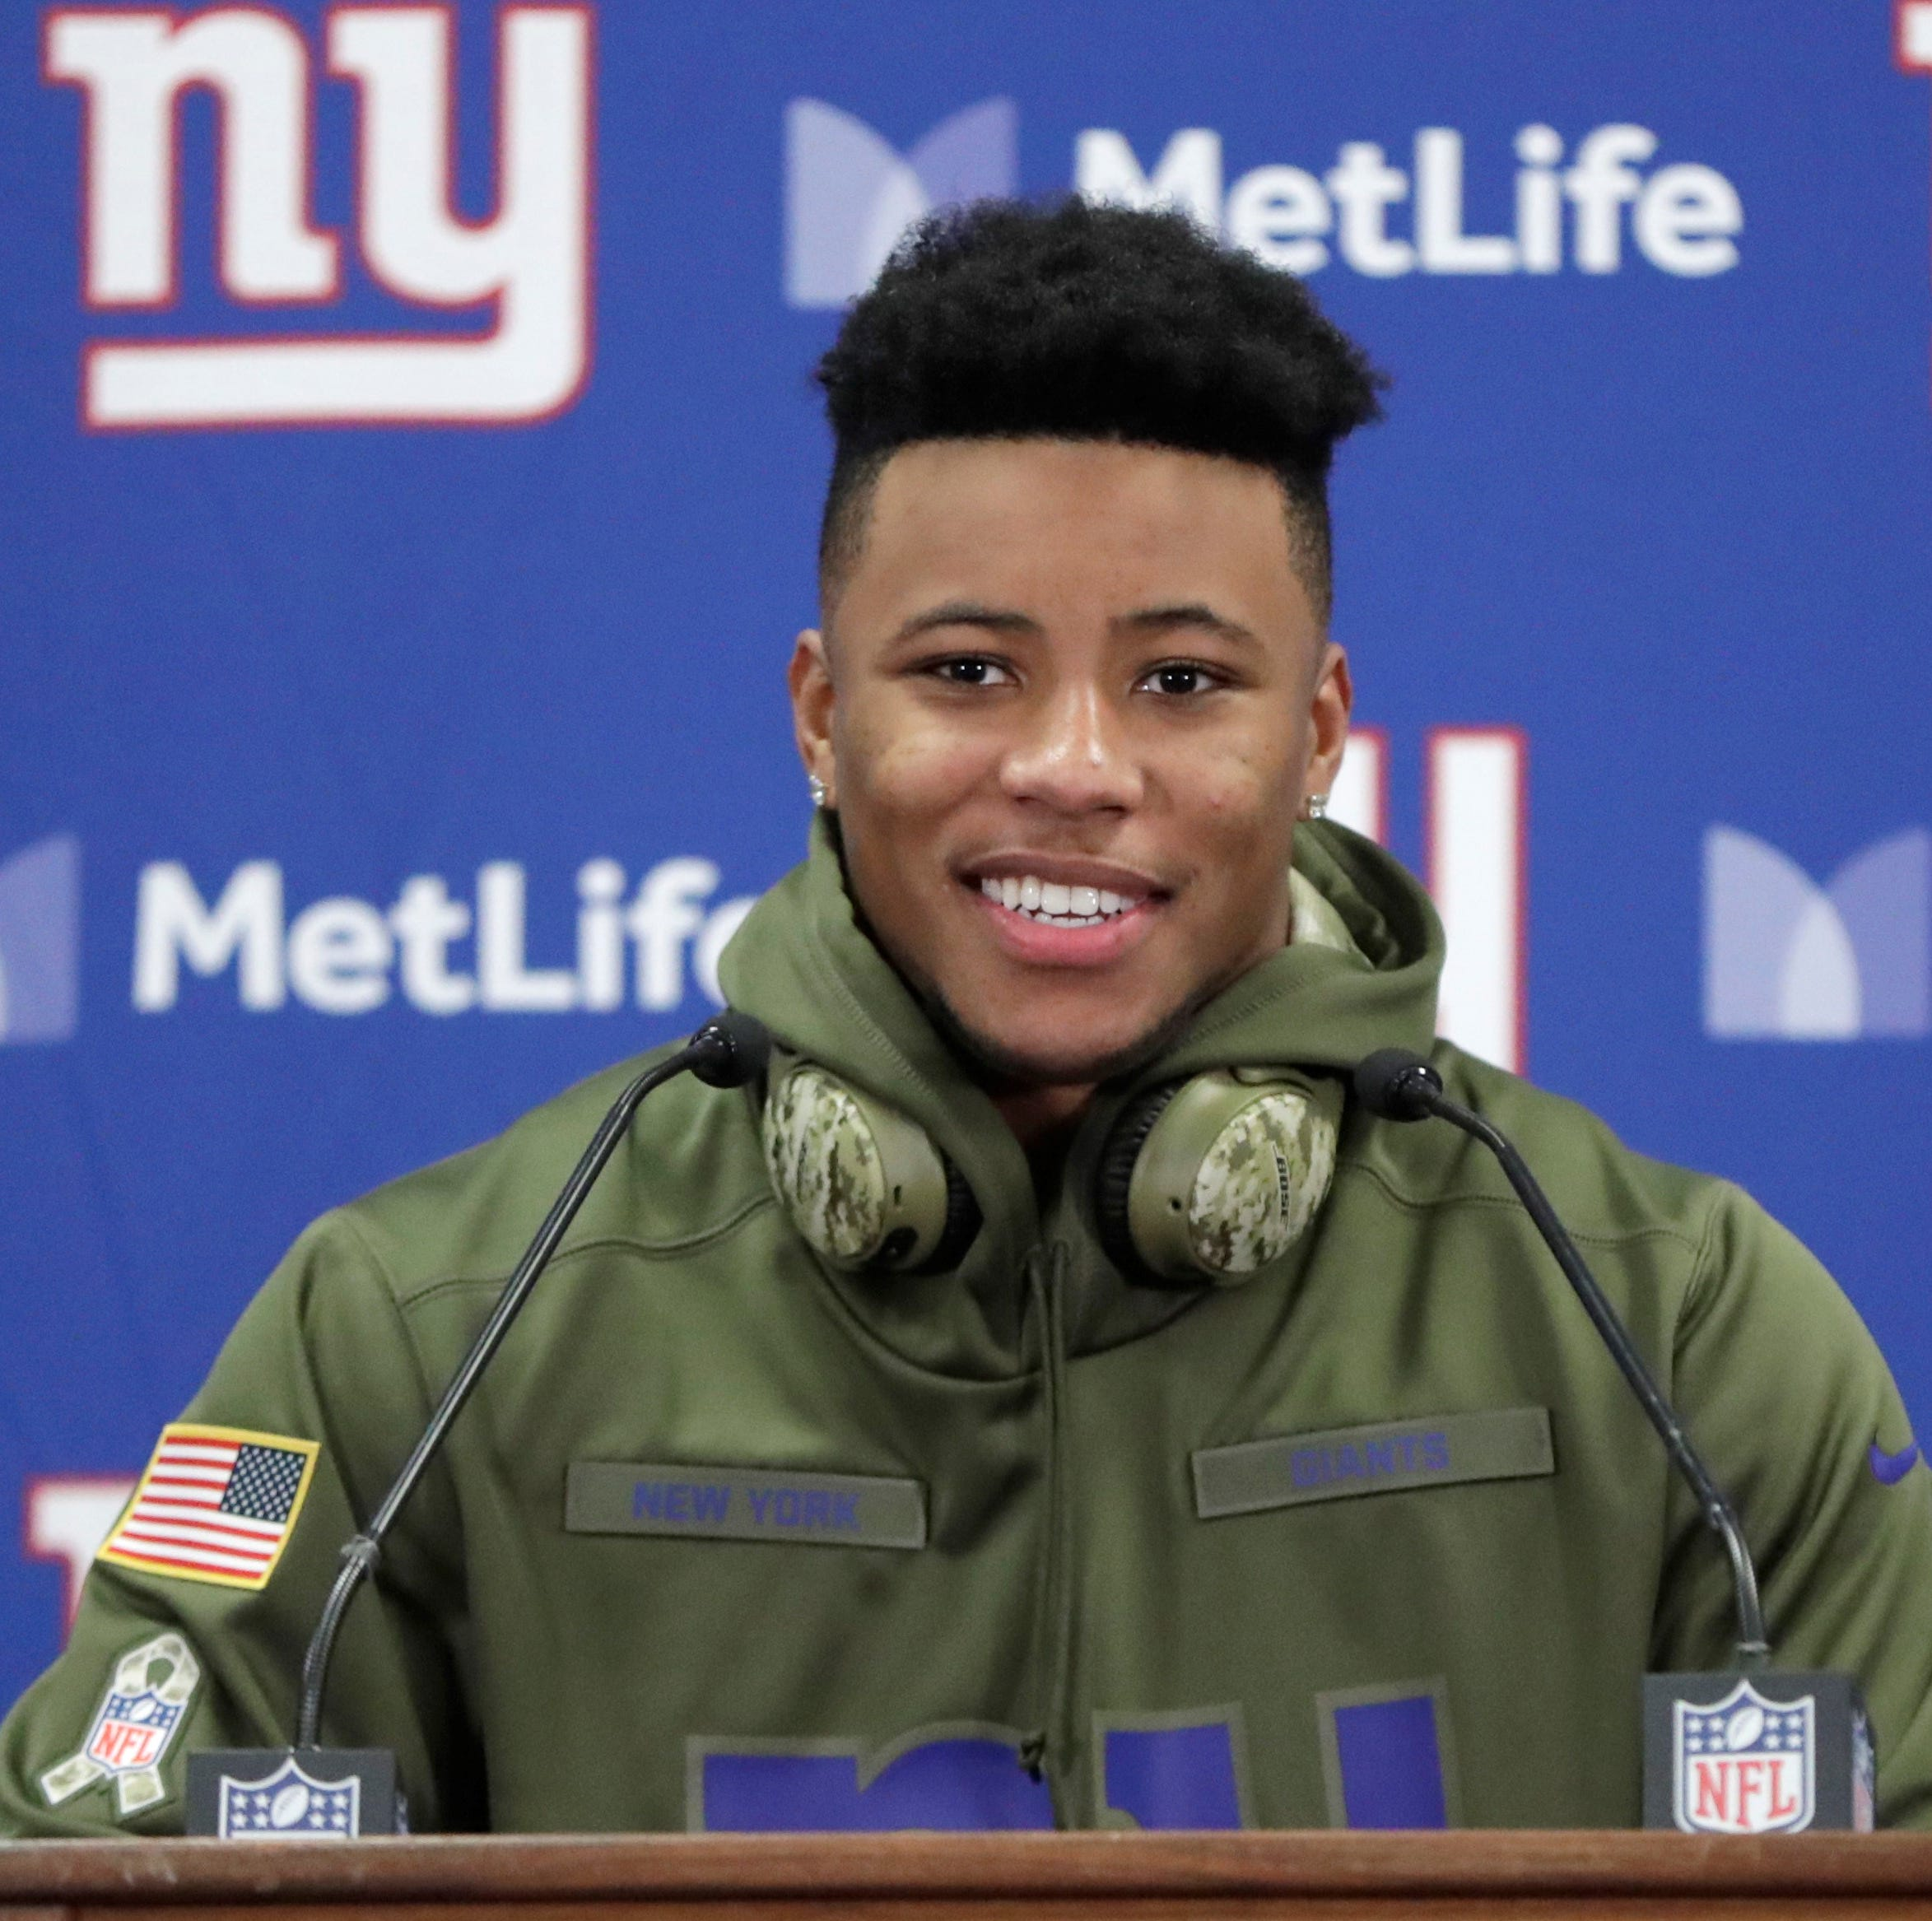 Next up for Eagles: A chance to stop Giants' mini-streak, standout rookie Saquon Barkley